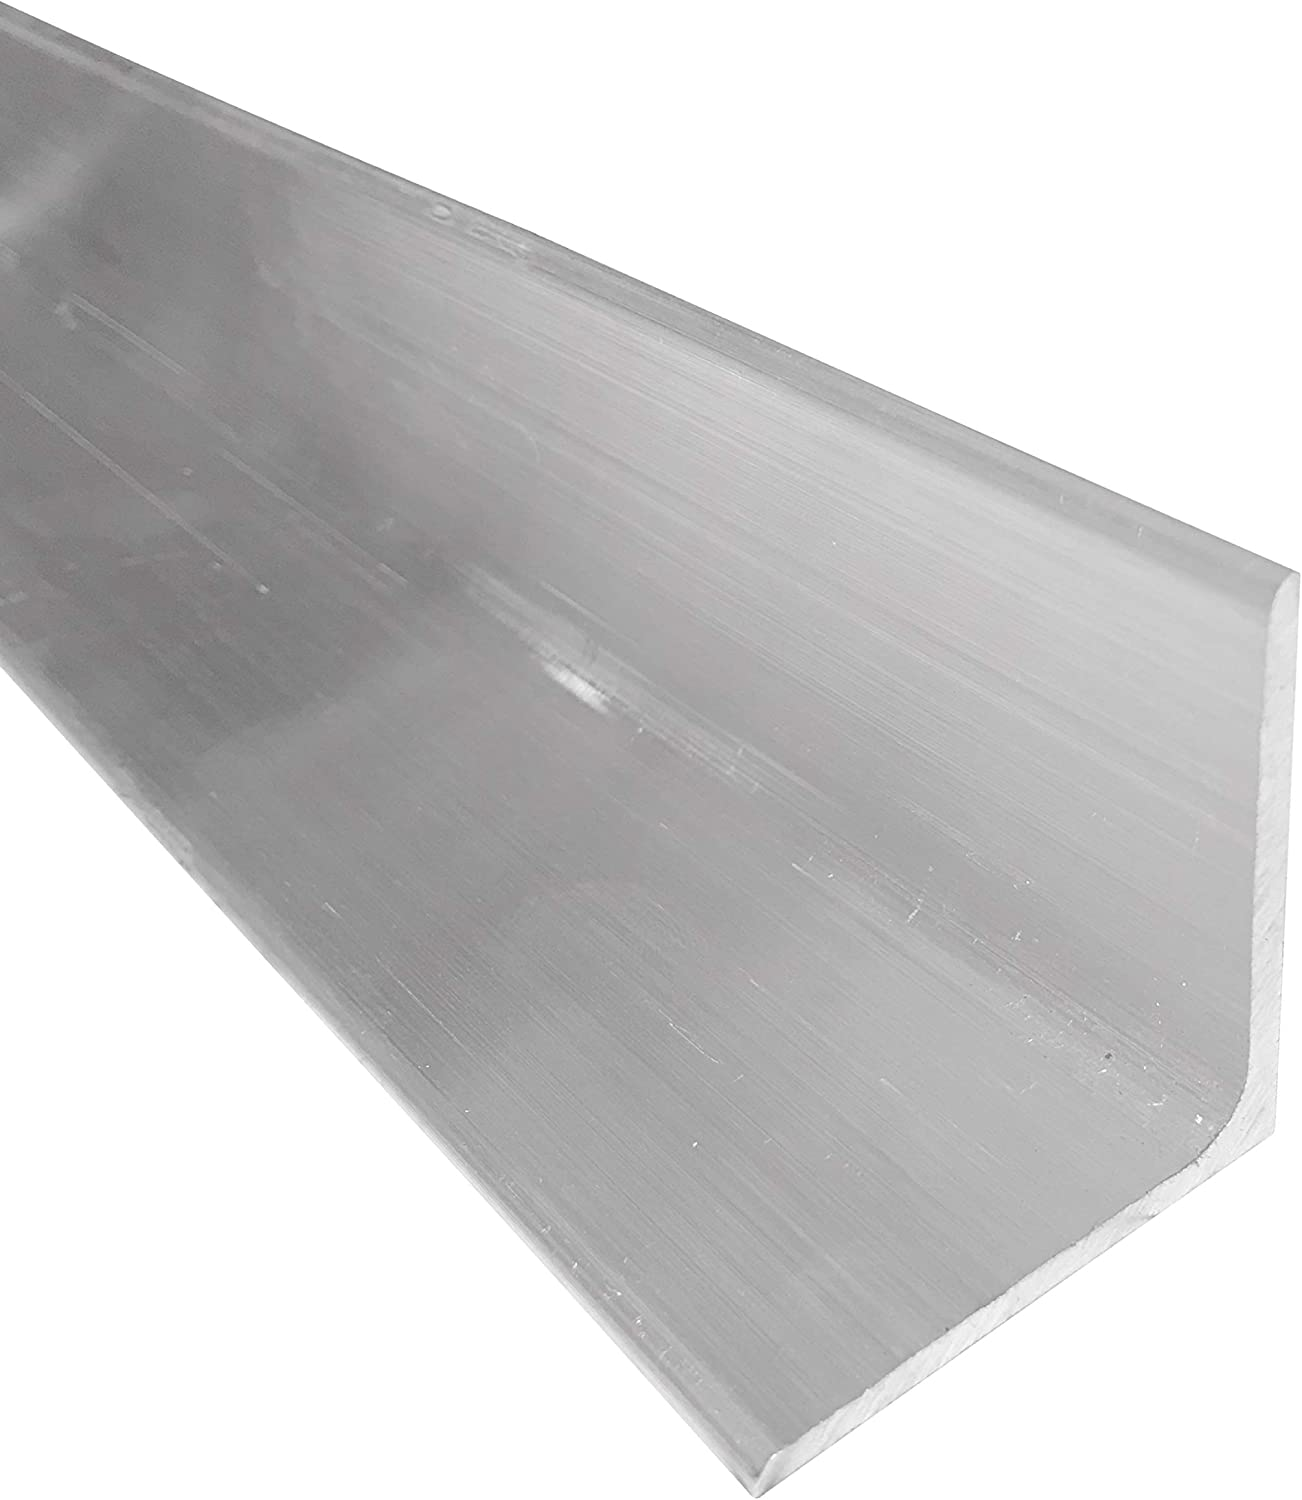 1-1//2 x 1-1//2 Aluminum Angle 6061 T6511 Mill Stock 36 Length 1//4 Thick